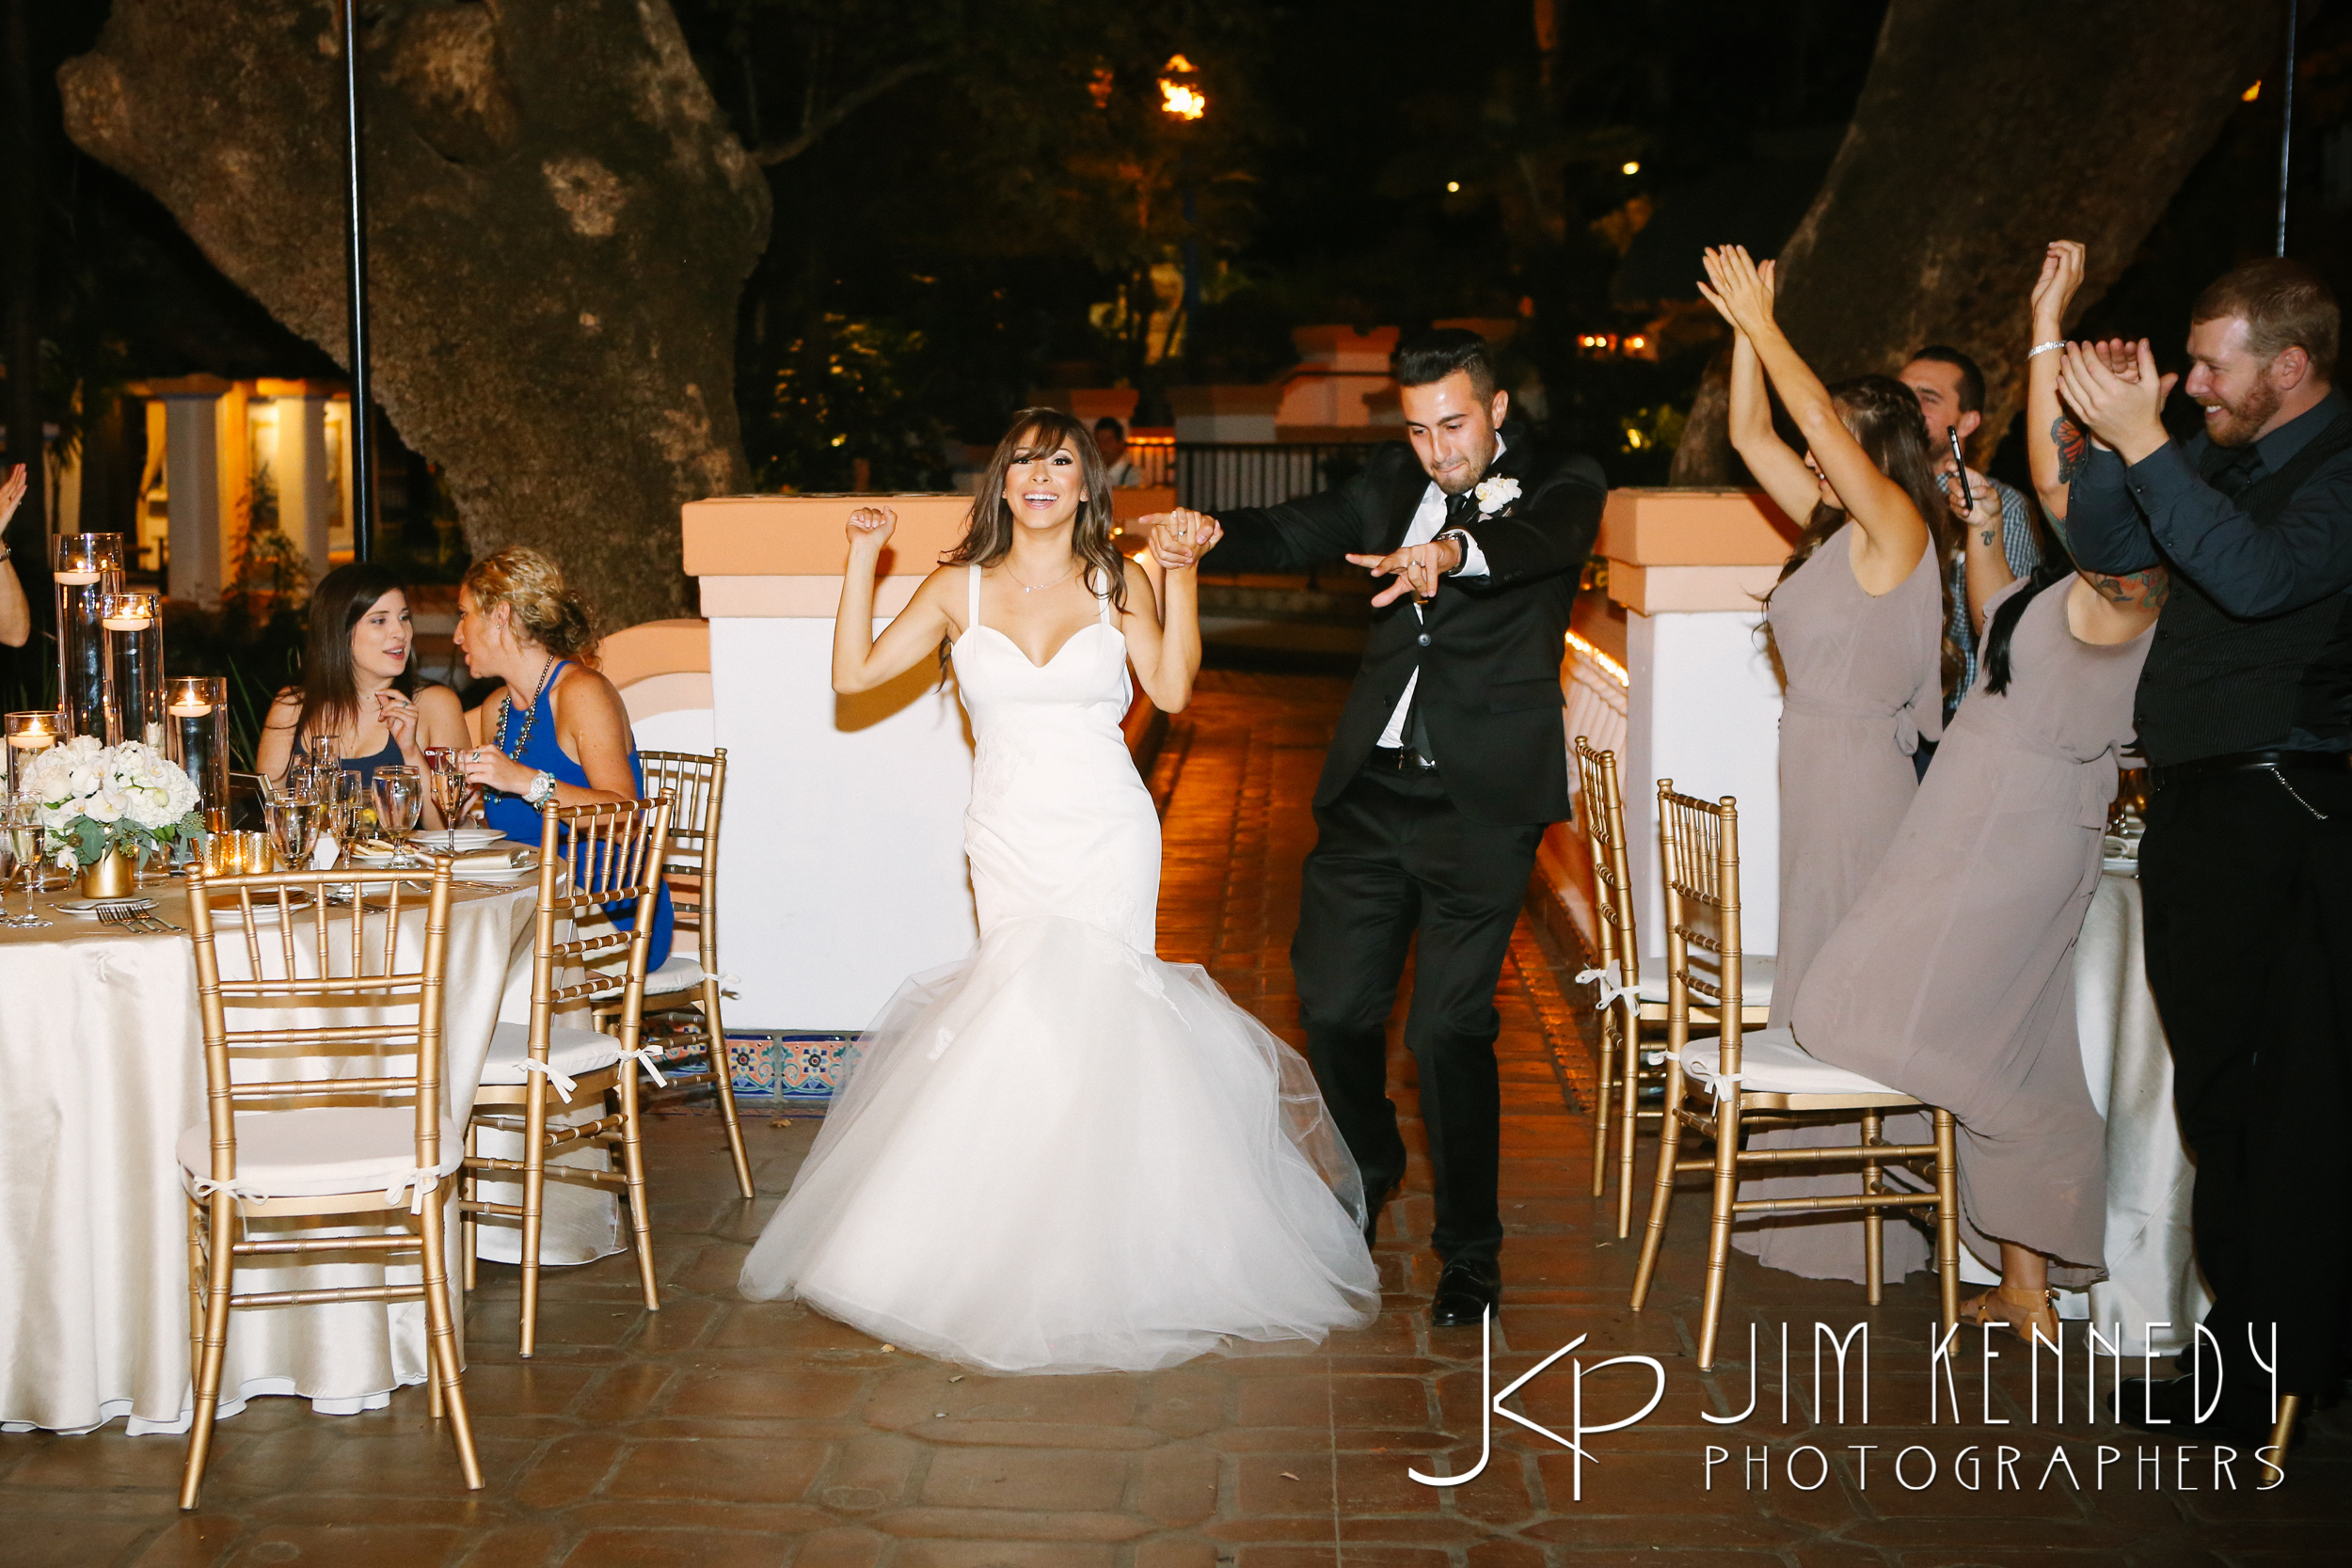 rancho-las-lomas-wedding-159.JPG